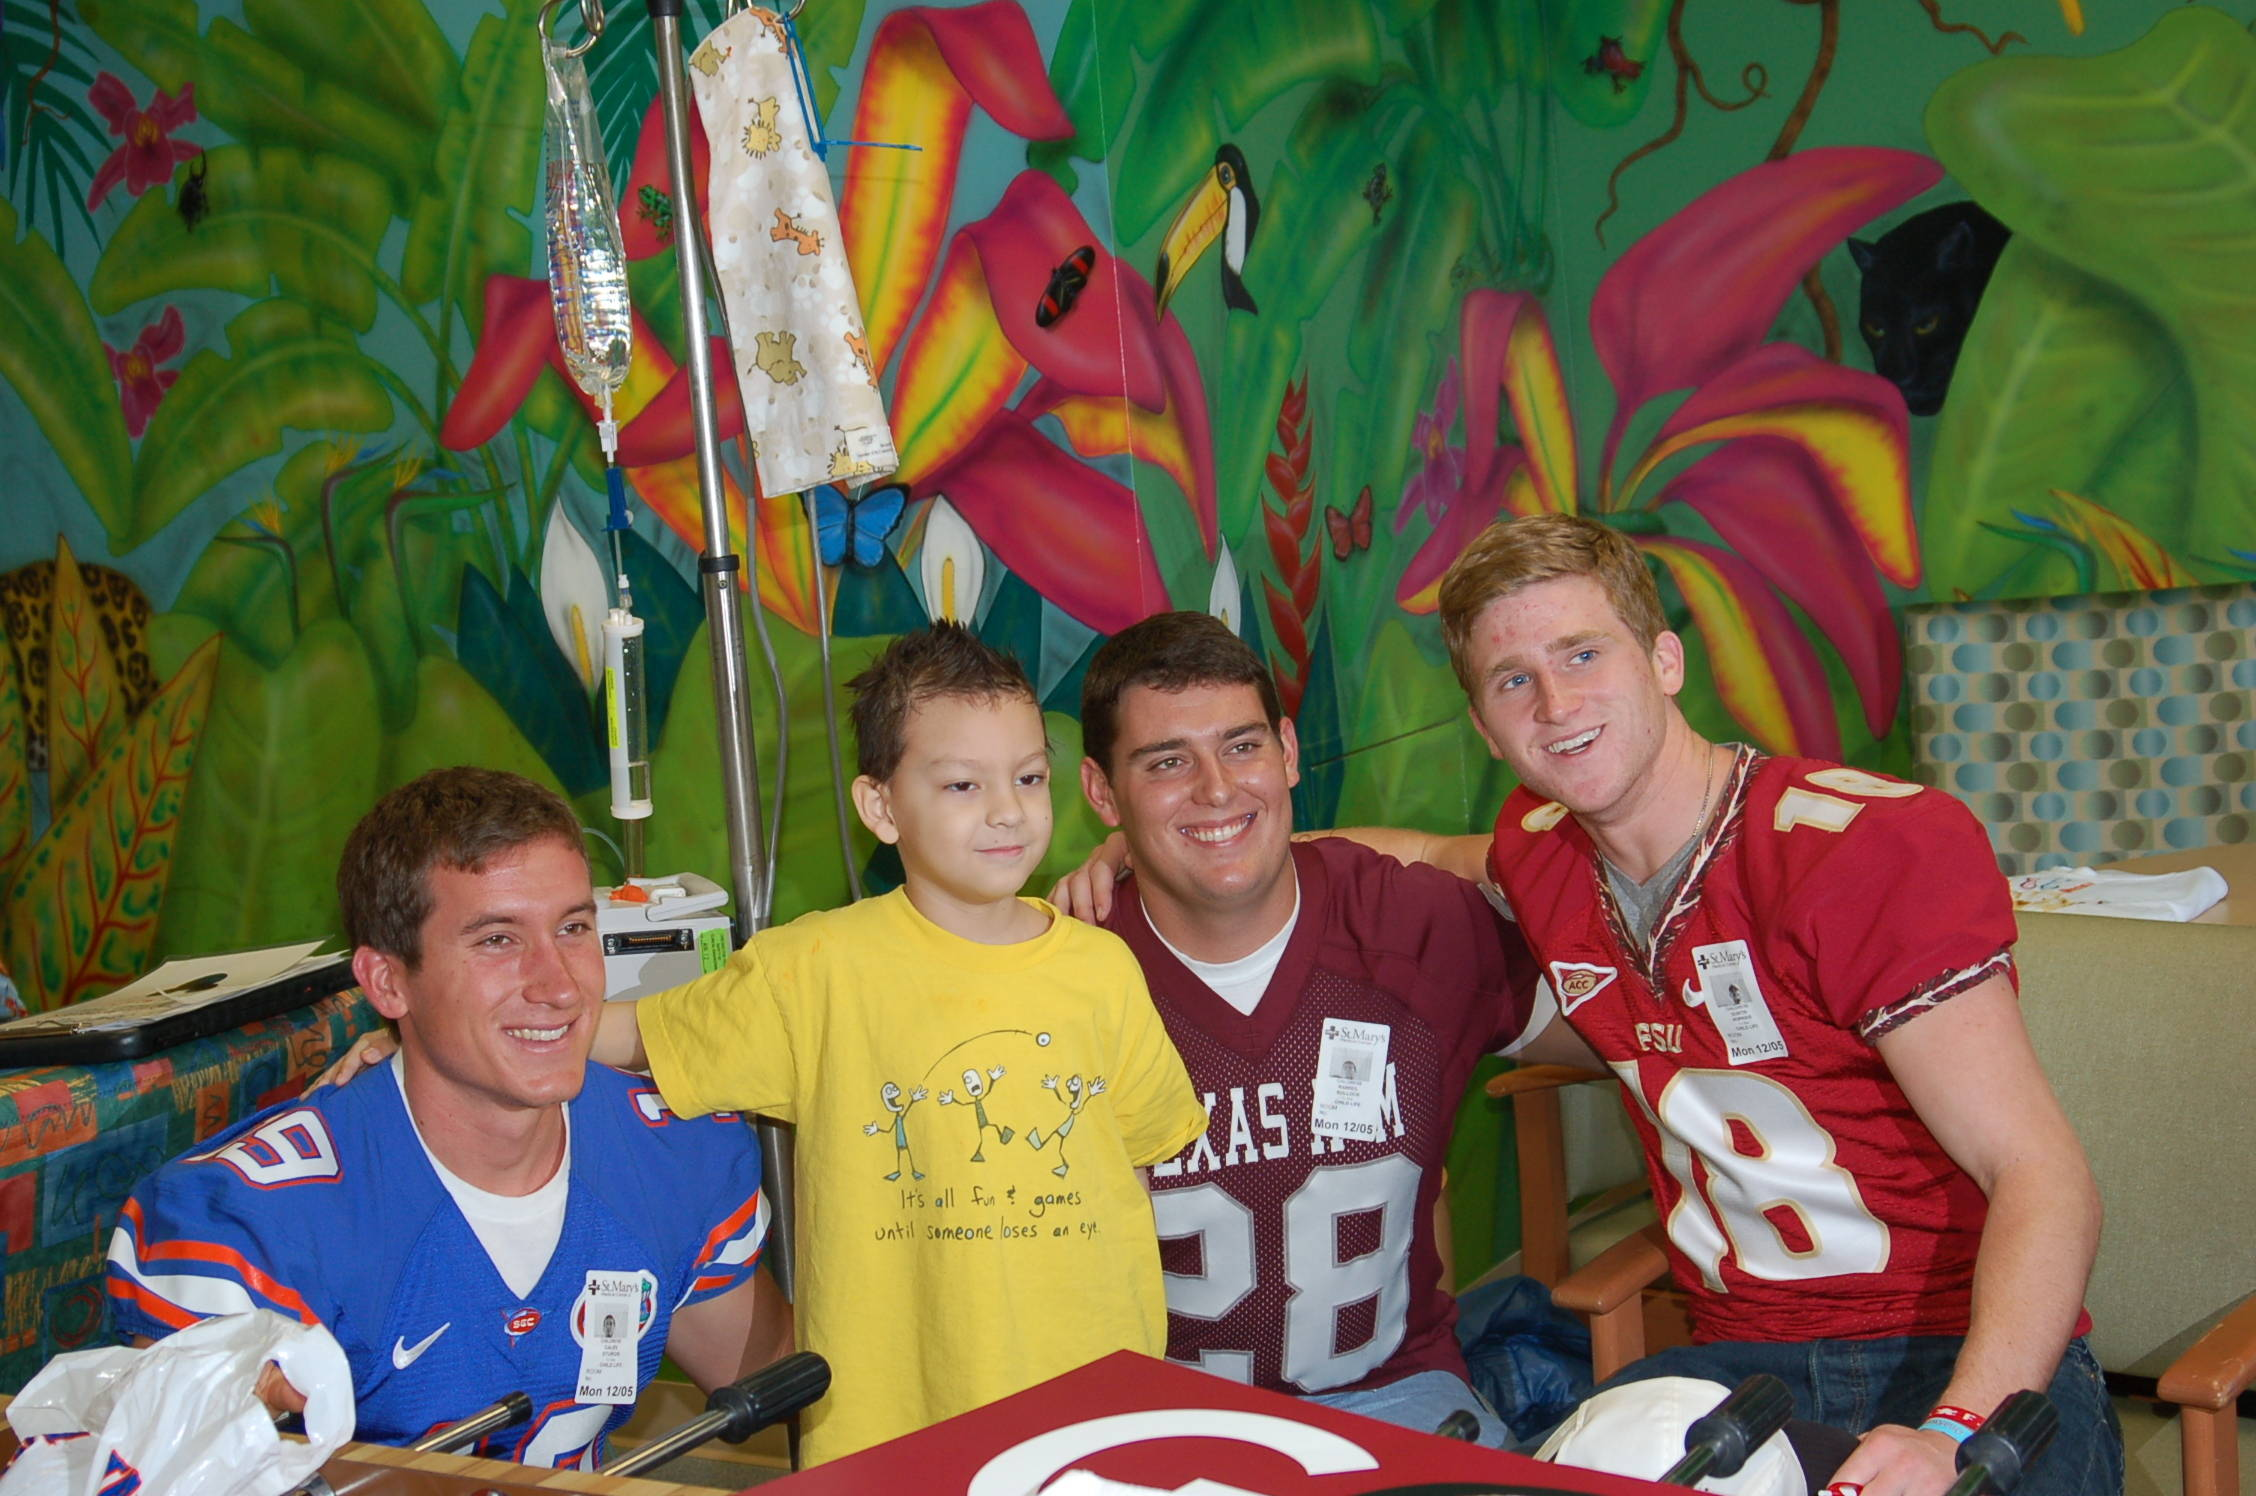 The players seemed to enjoy the Children's Hospital visit as much as the youngsters.